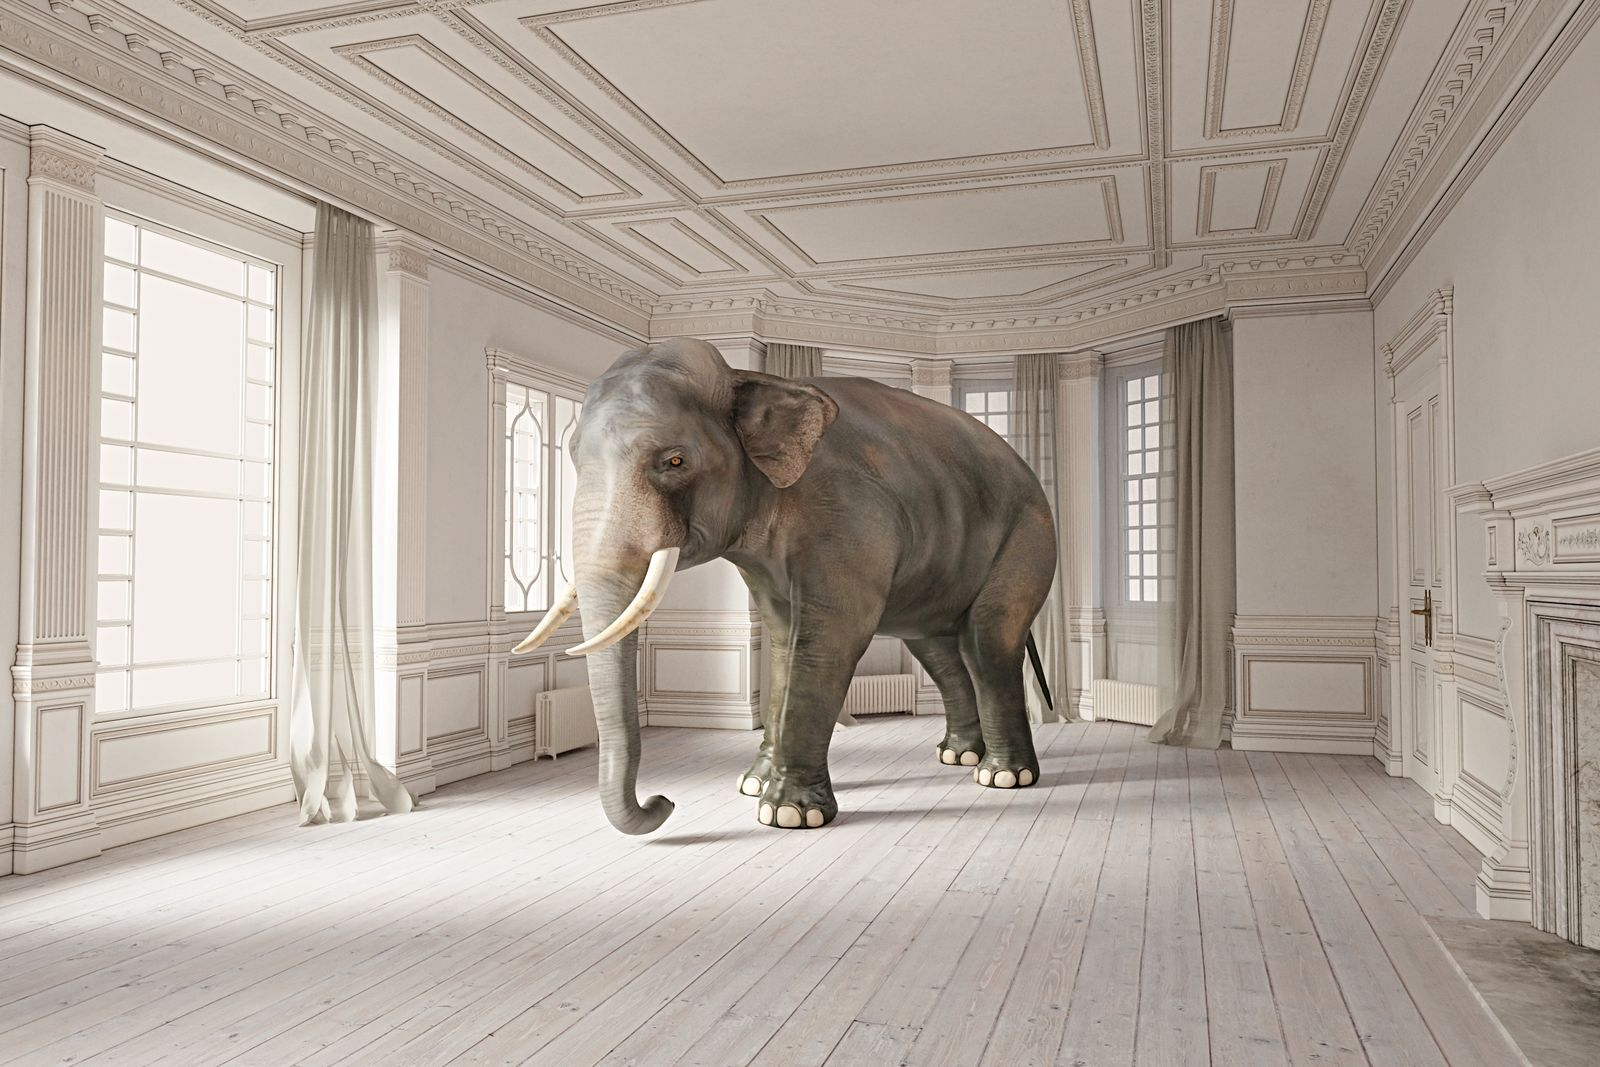 Elephant in the room series.